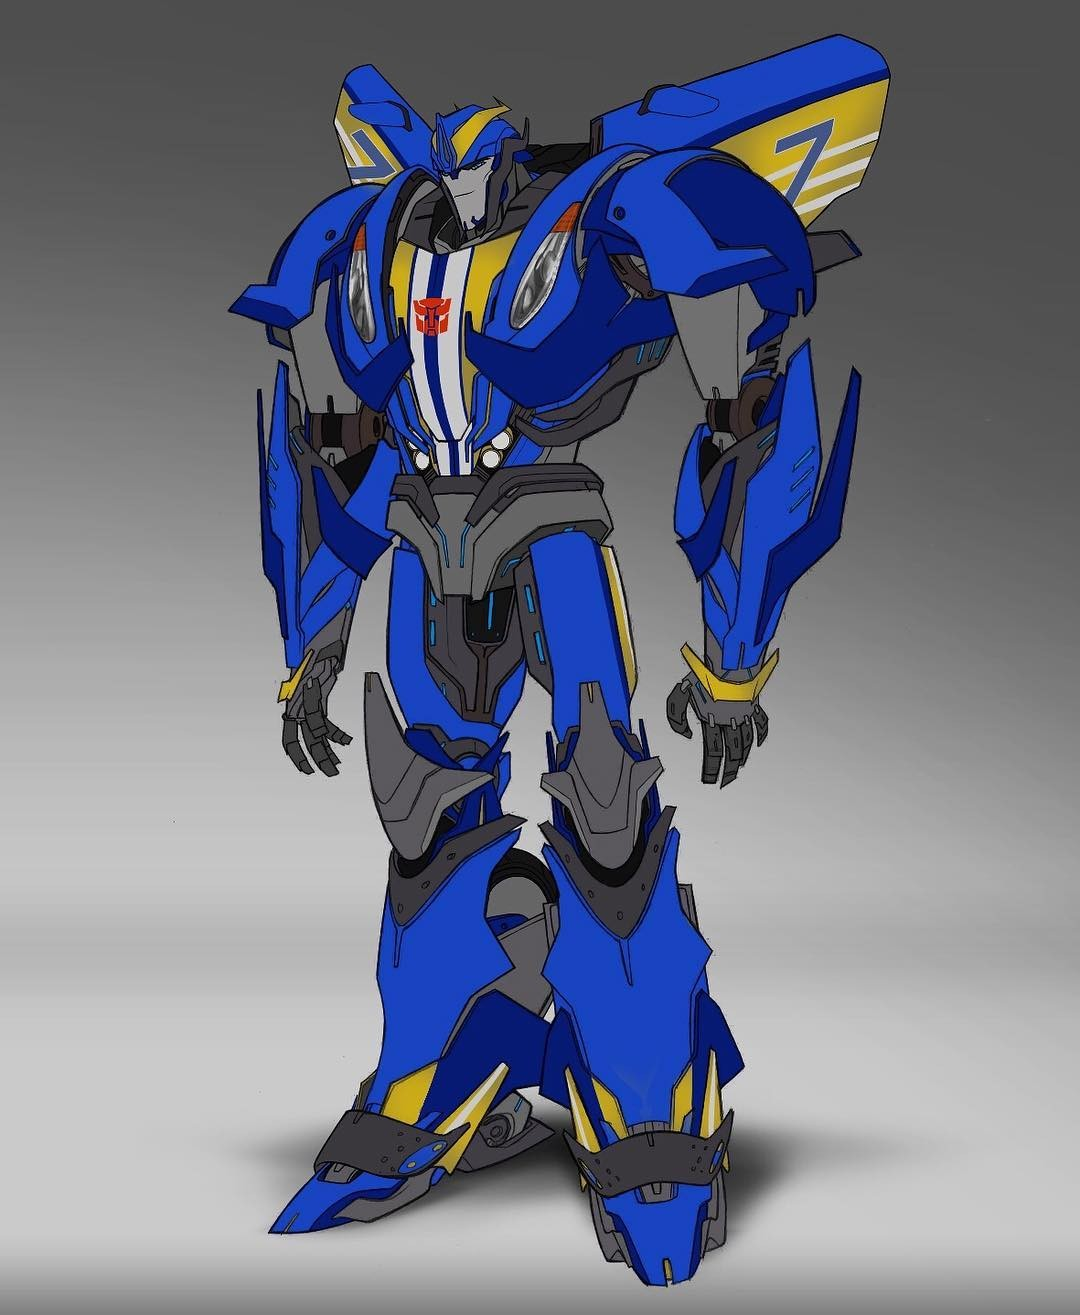 Transformers News: Transformers: Prime Concept Art by Jose Lopez